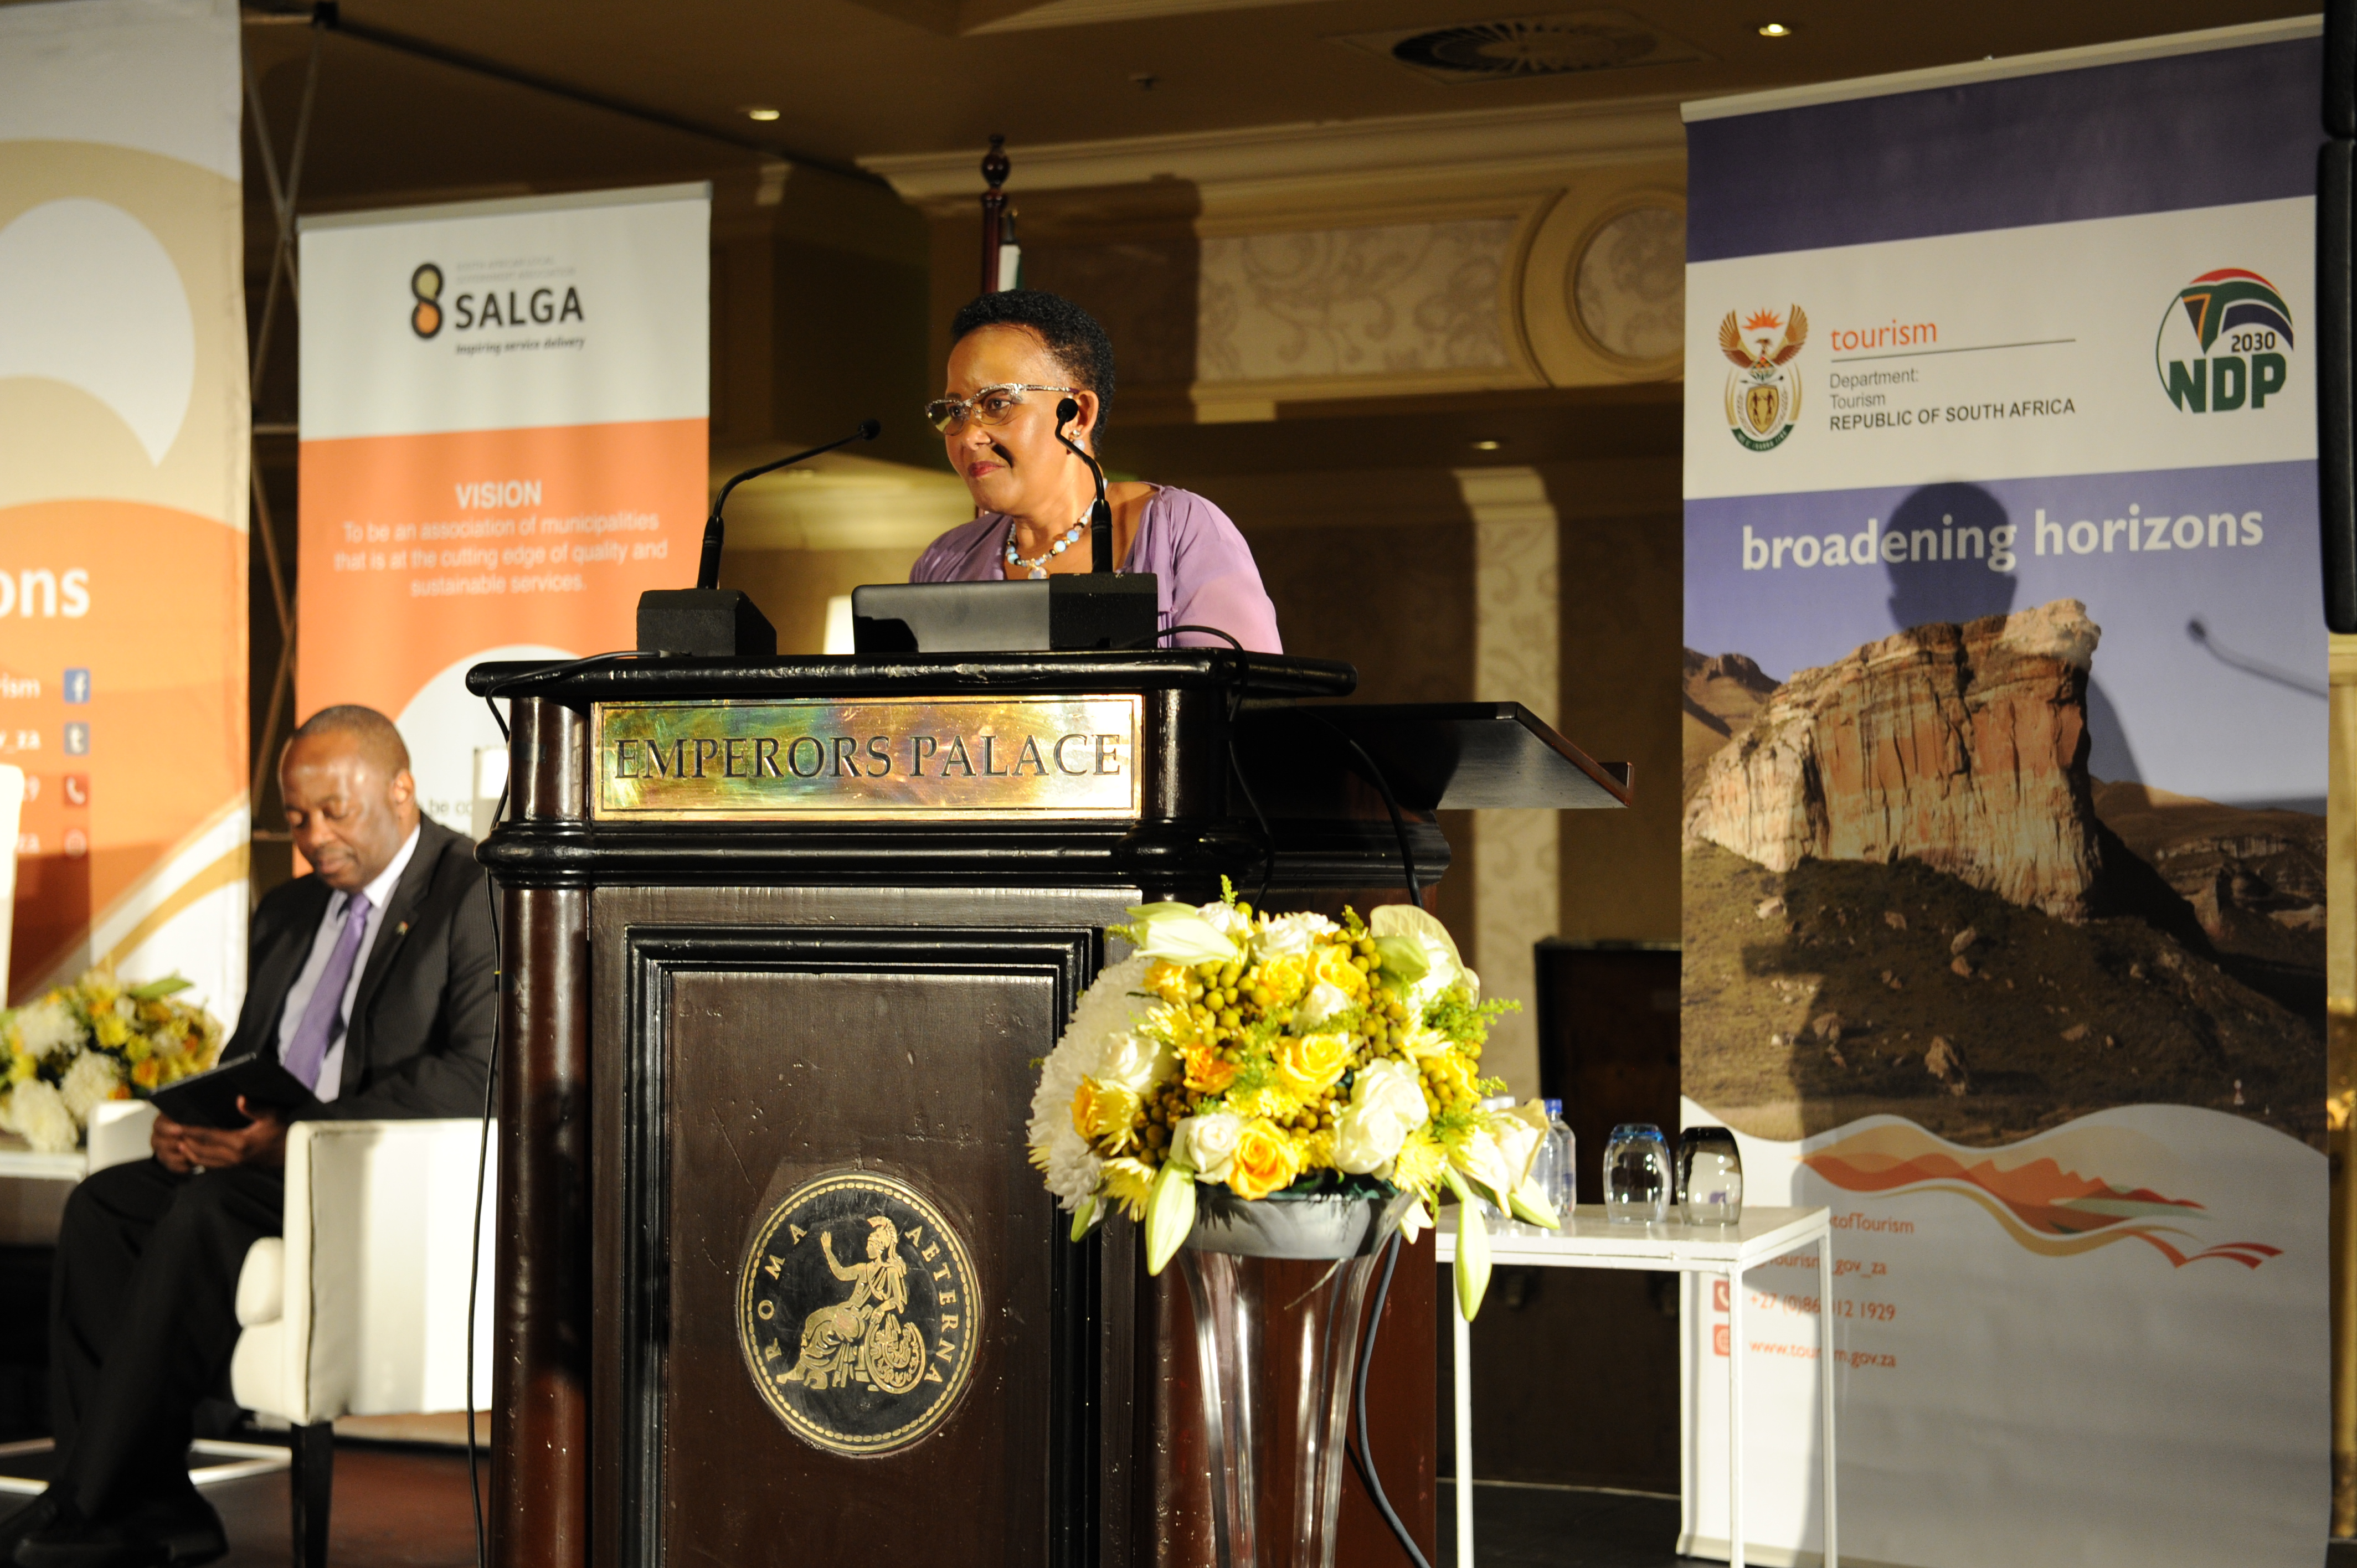 Image: The Local Government Tourism Conference at Emperors Palace